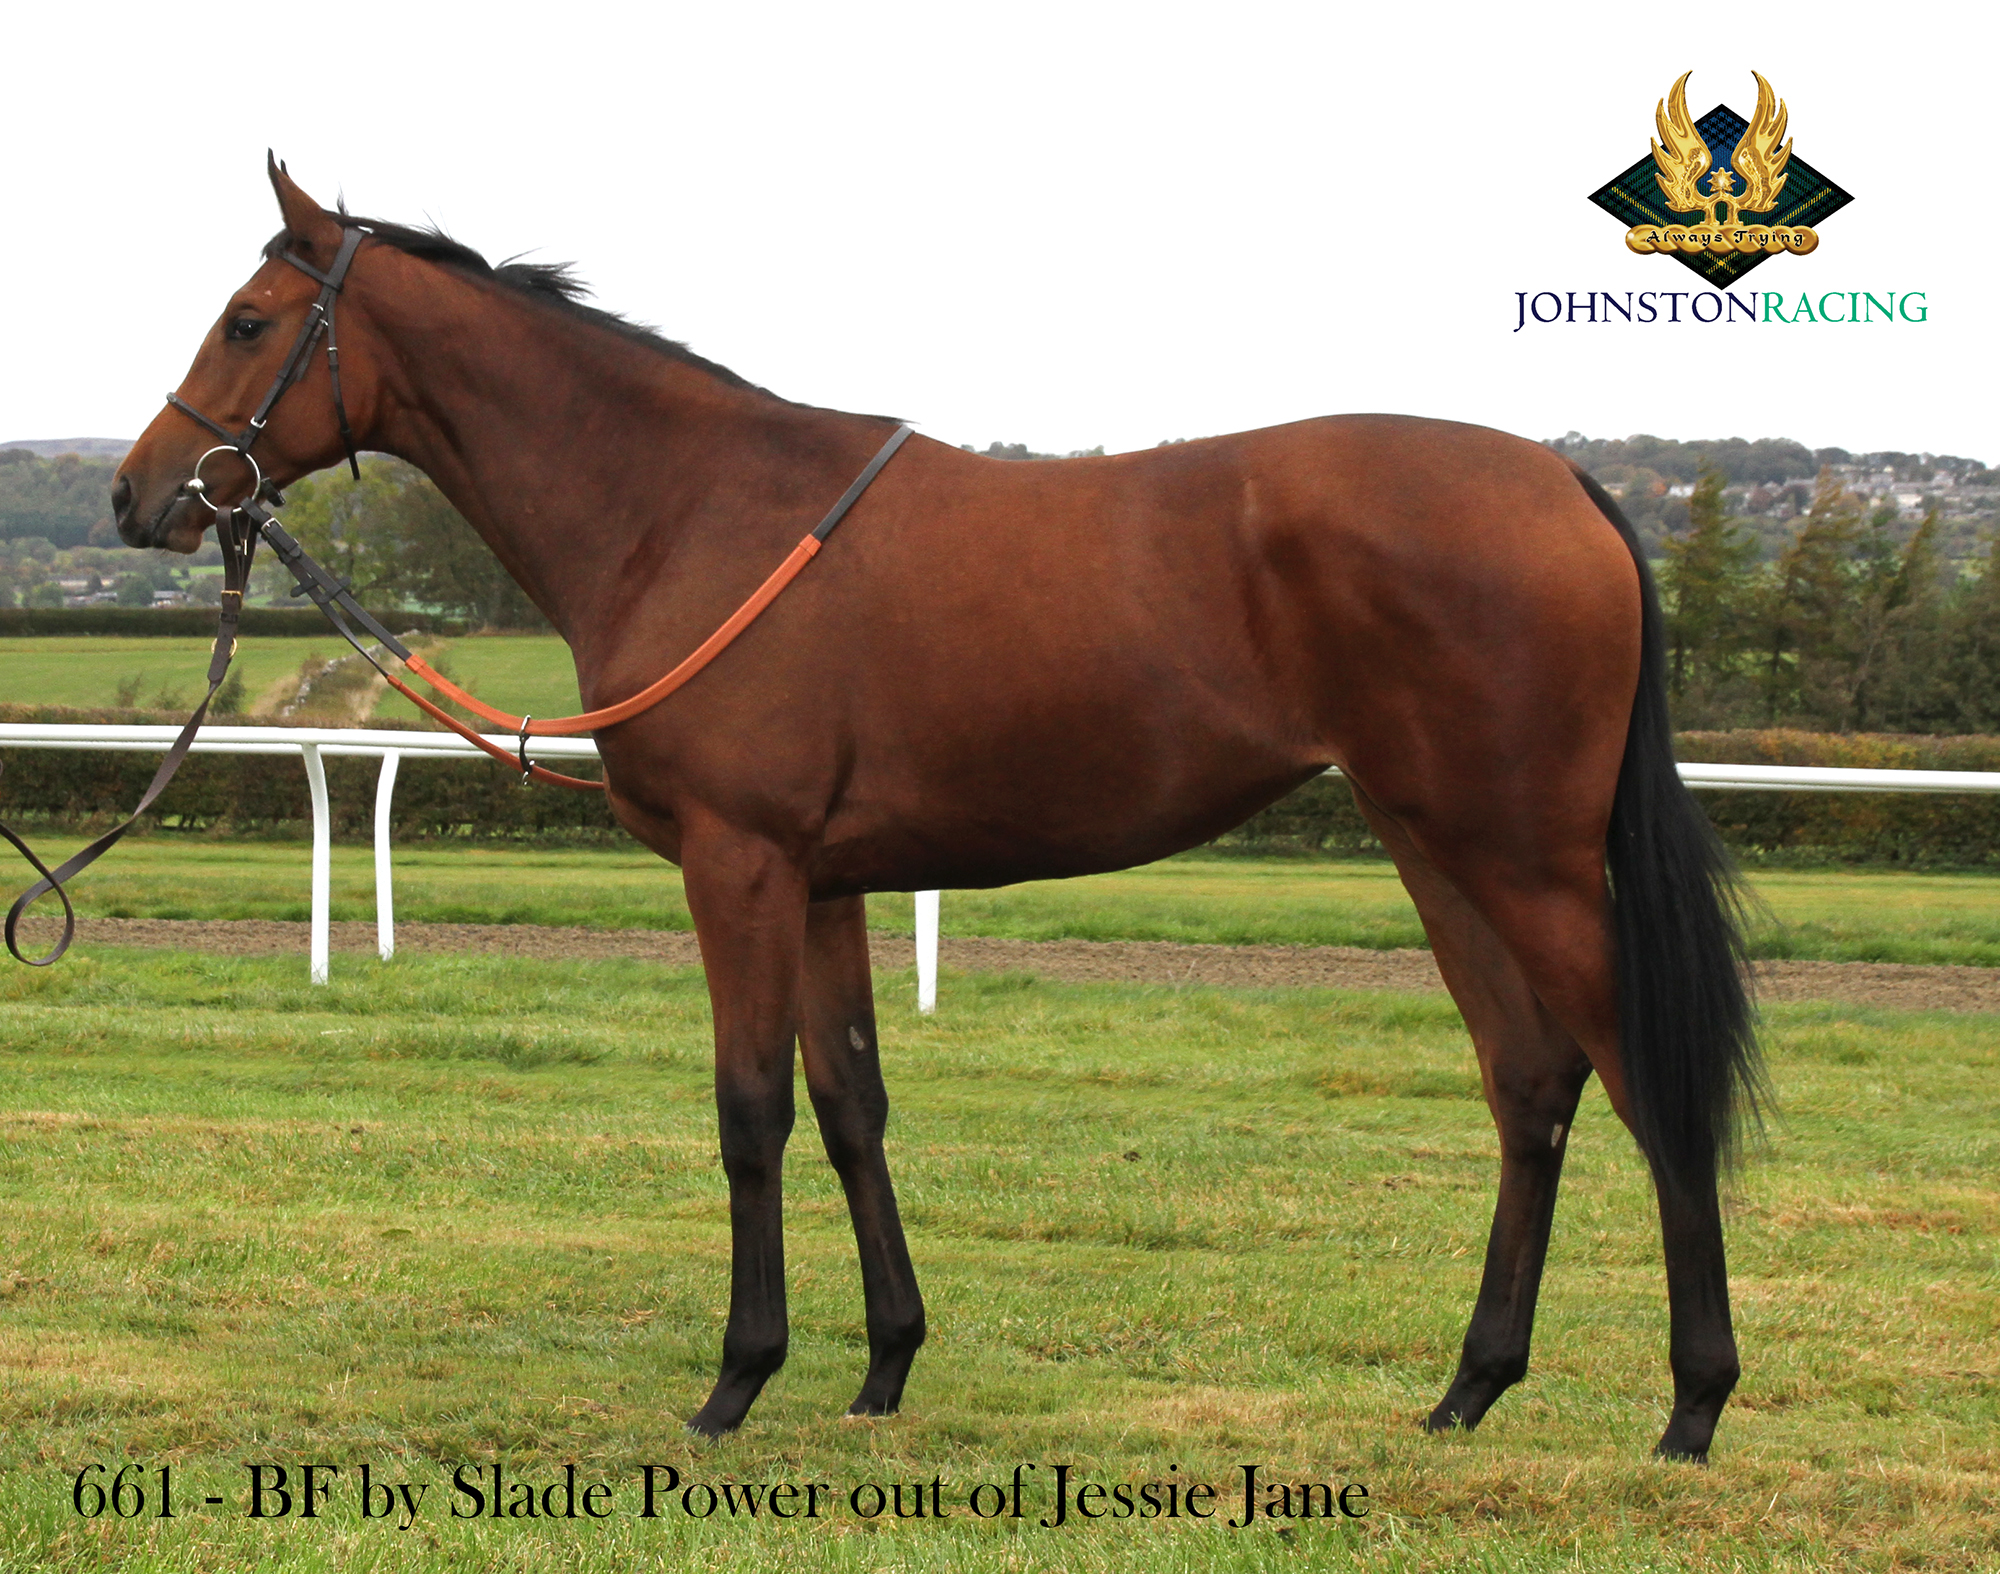 Bay Filly by Slade Power out of Jessie Jane